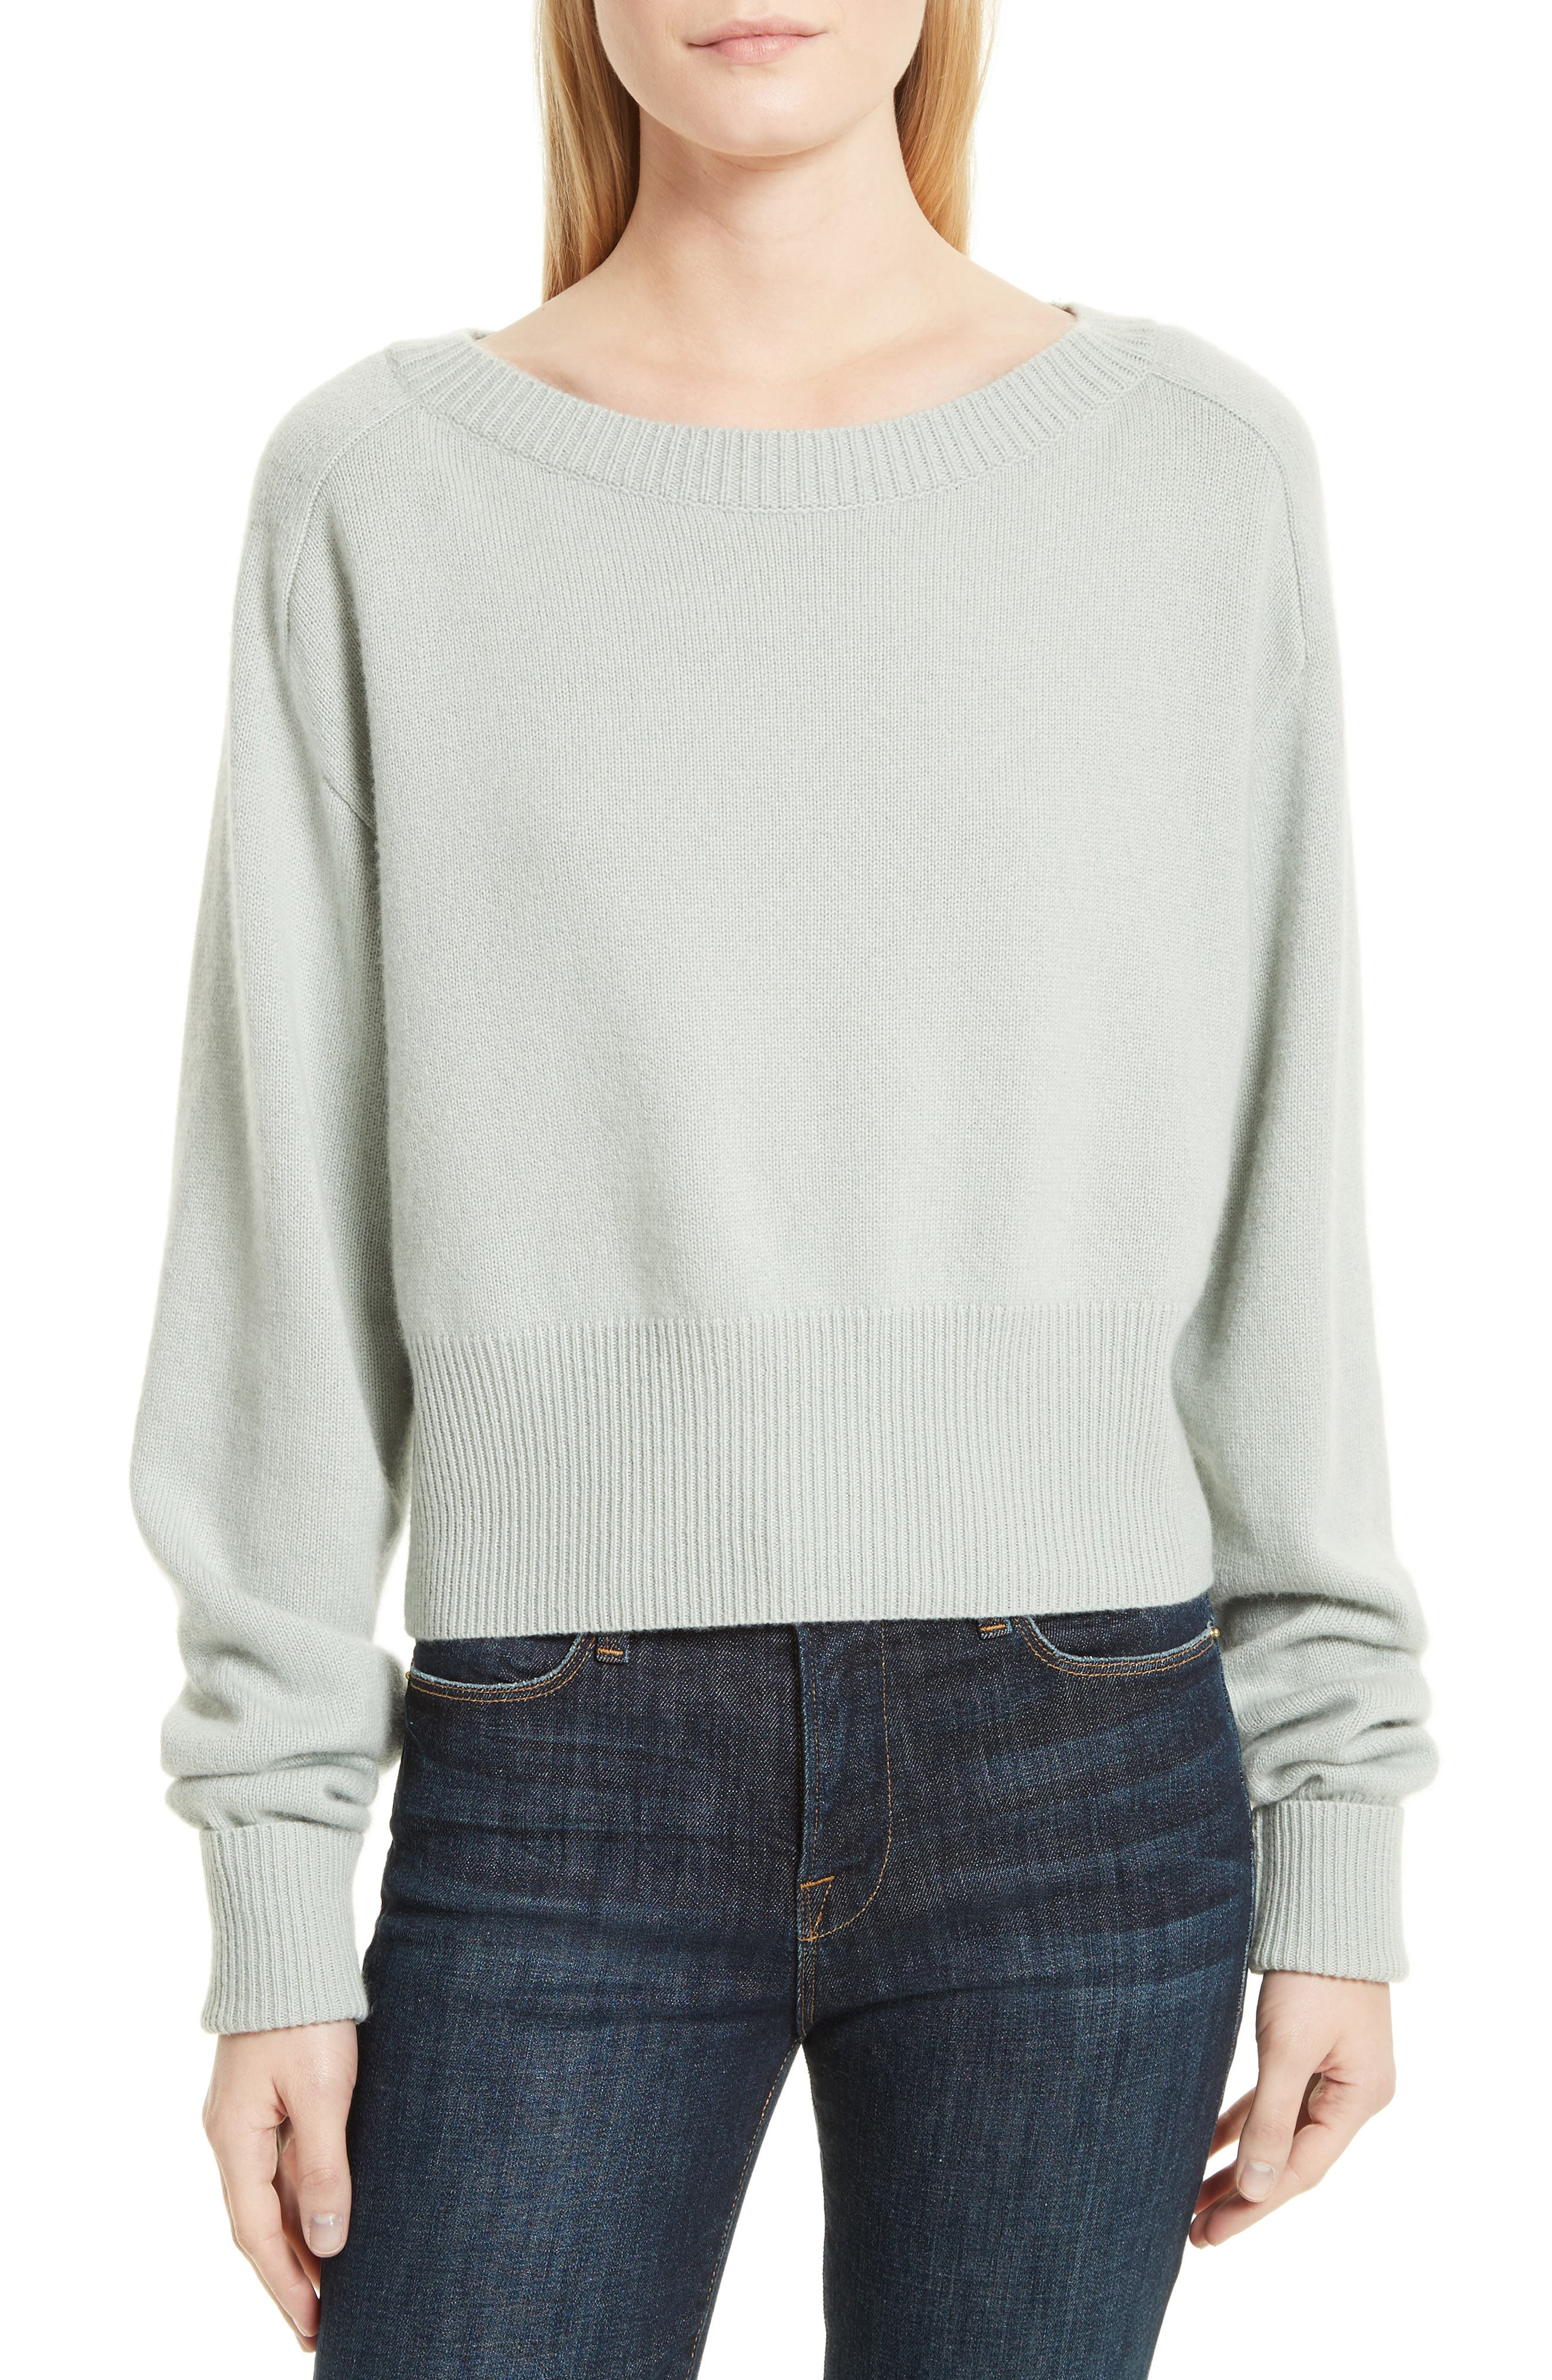 THEORY,                             Boat Neck Cashmere Sweater,                             Main thumbnail 1, color,                             374